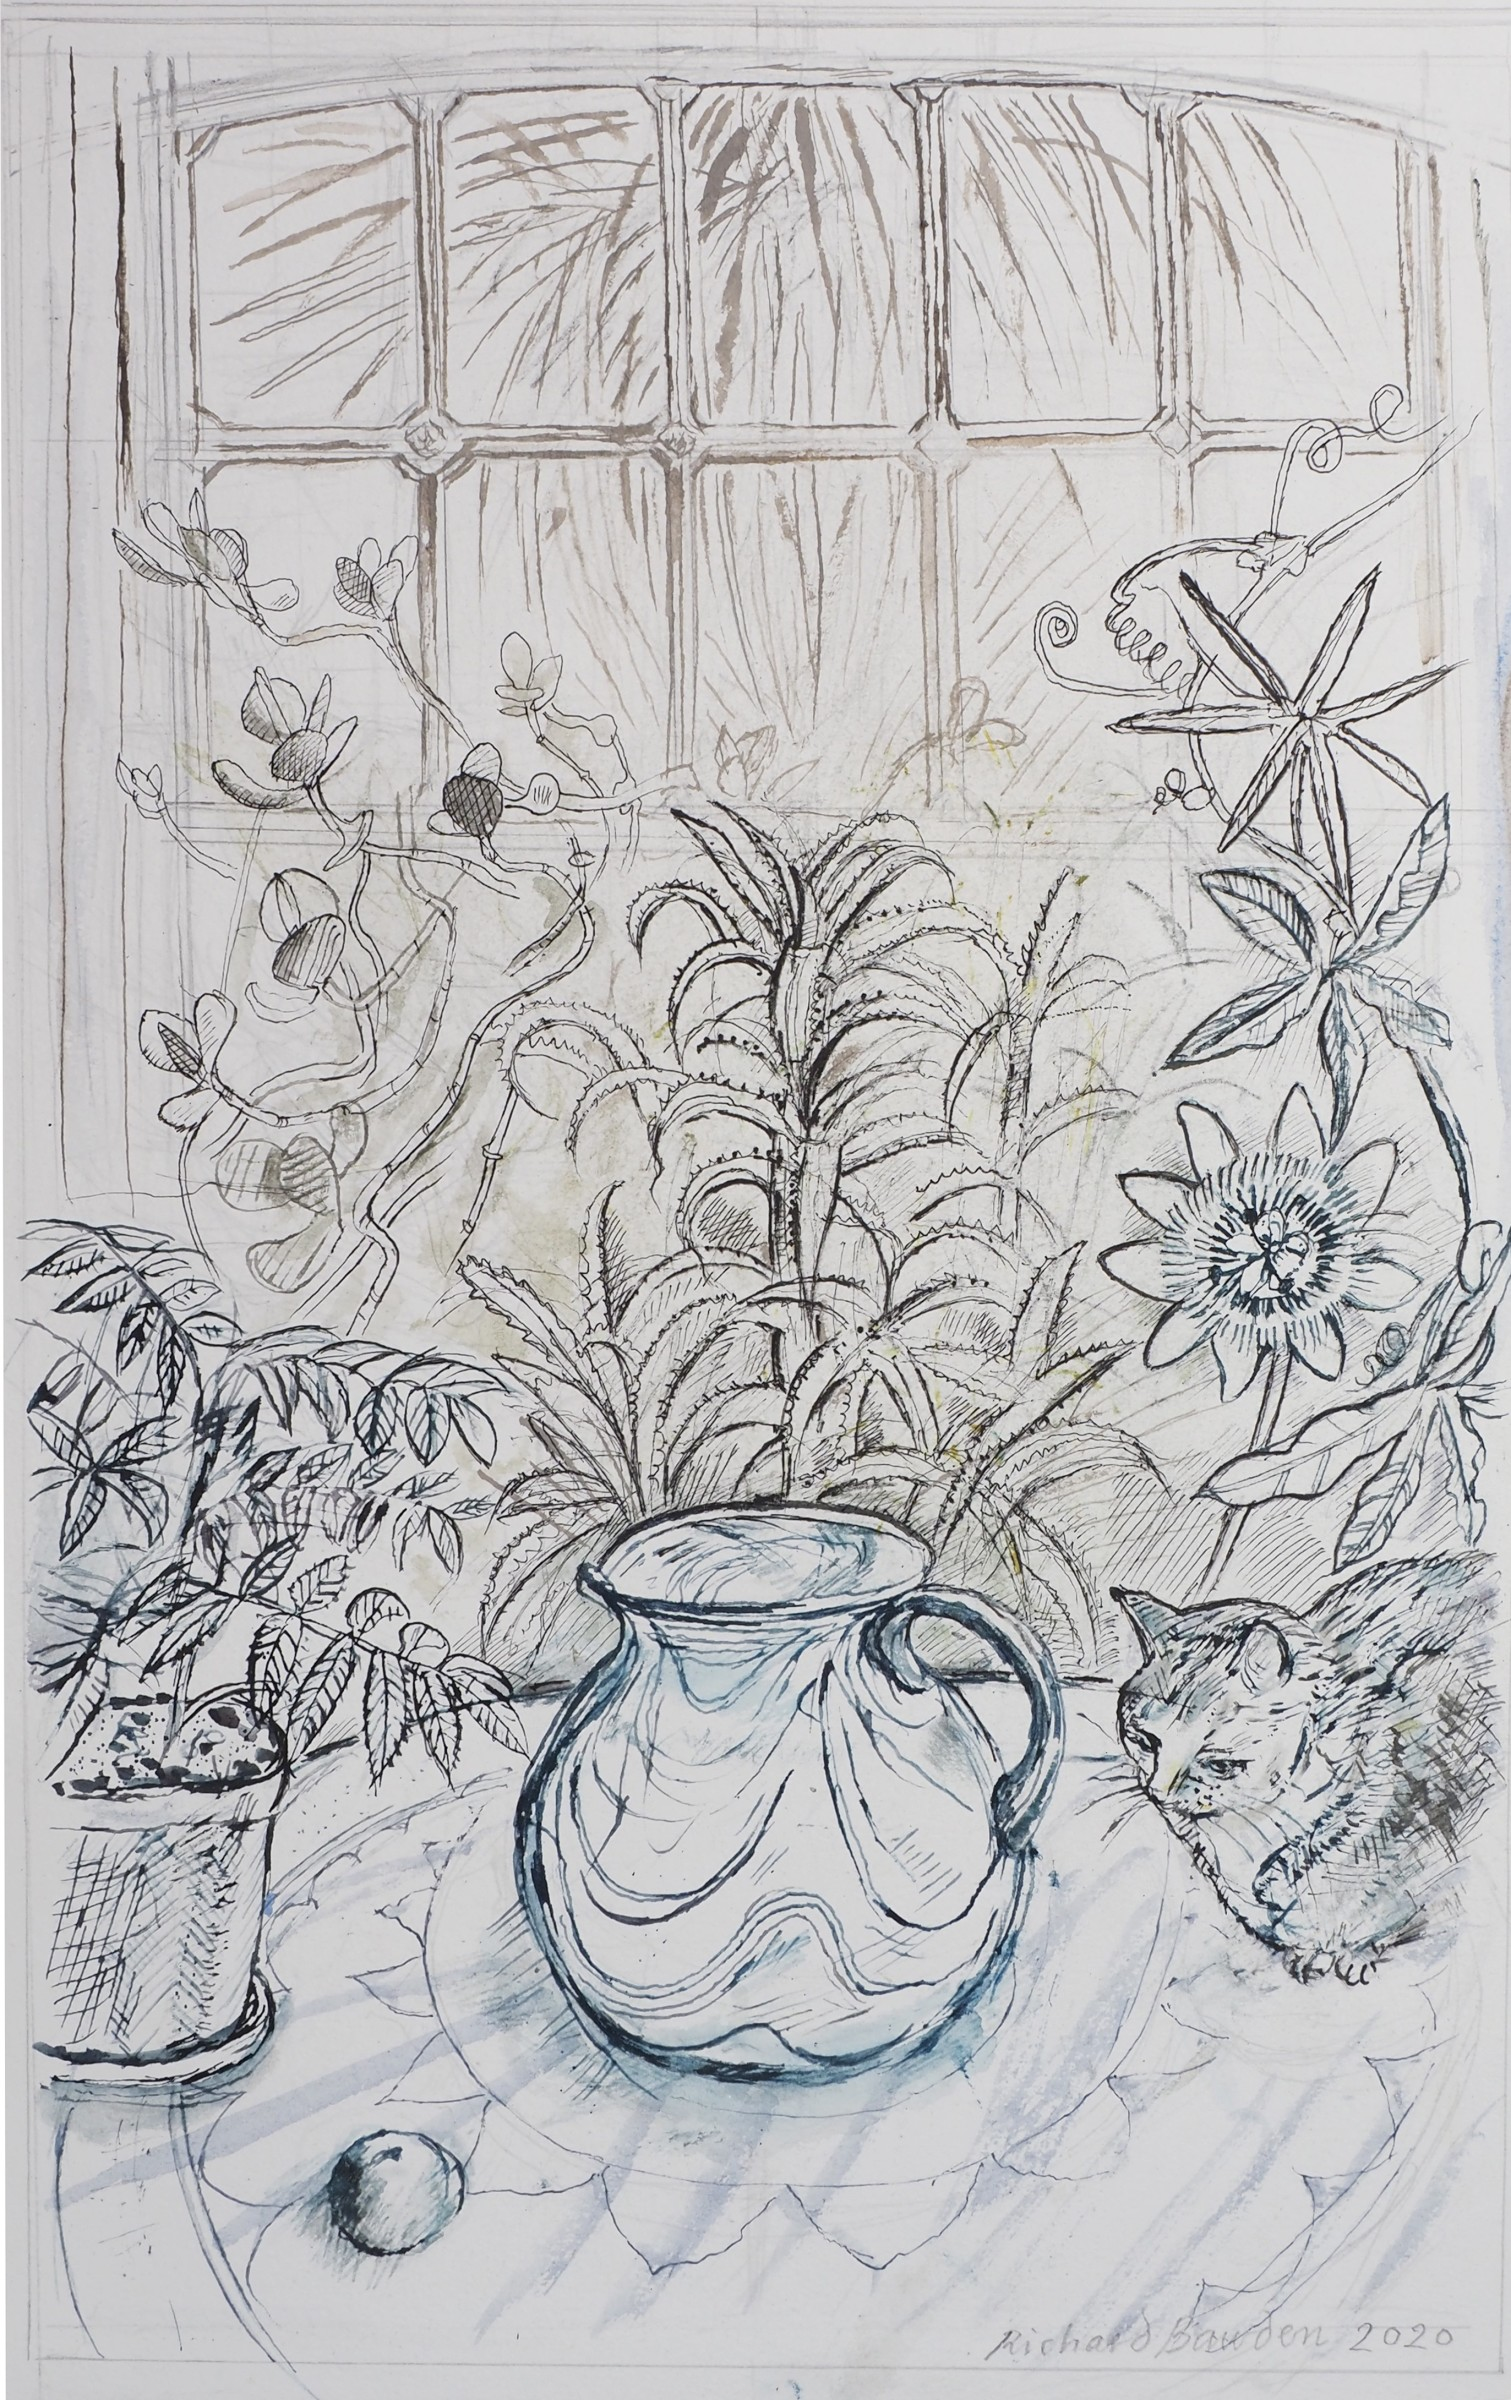 "<span class=""link fancybox-details-link""><a href=""/exhibitions/22/works/artworks_standalone11140/"">View Detail Page</a></span><div class=""artist""><span class=""artist""><strong>Richard Bawden RWS RE</strong></span></div><div class=""title""><em>The Conservatory in Lockdown 2</em></div><div class=""medium"">pen & ink</div><div class=""dimensions"">68 x 49 cm framed<br>46 x 30 cm image size</div>"